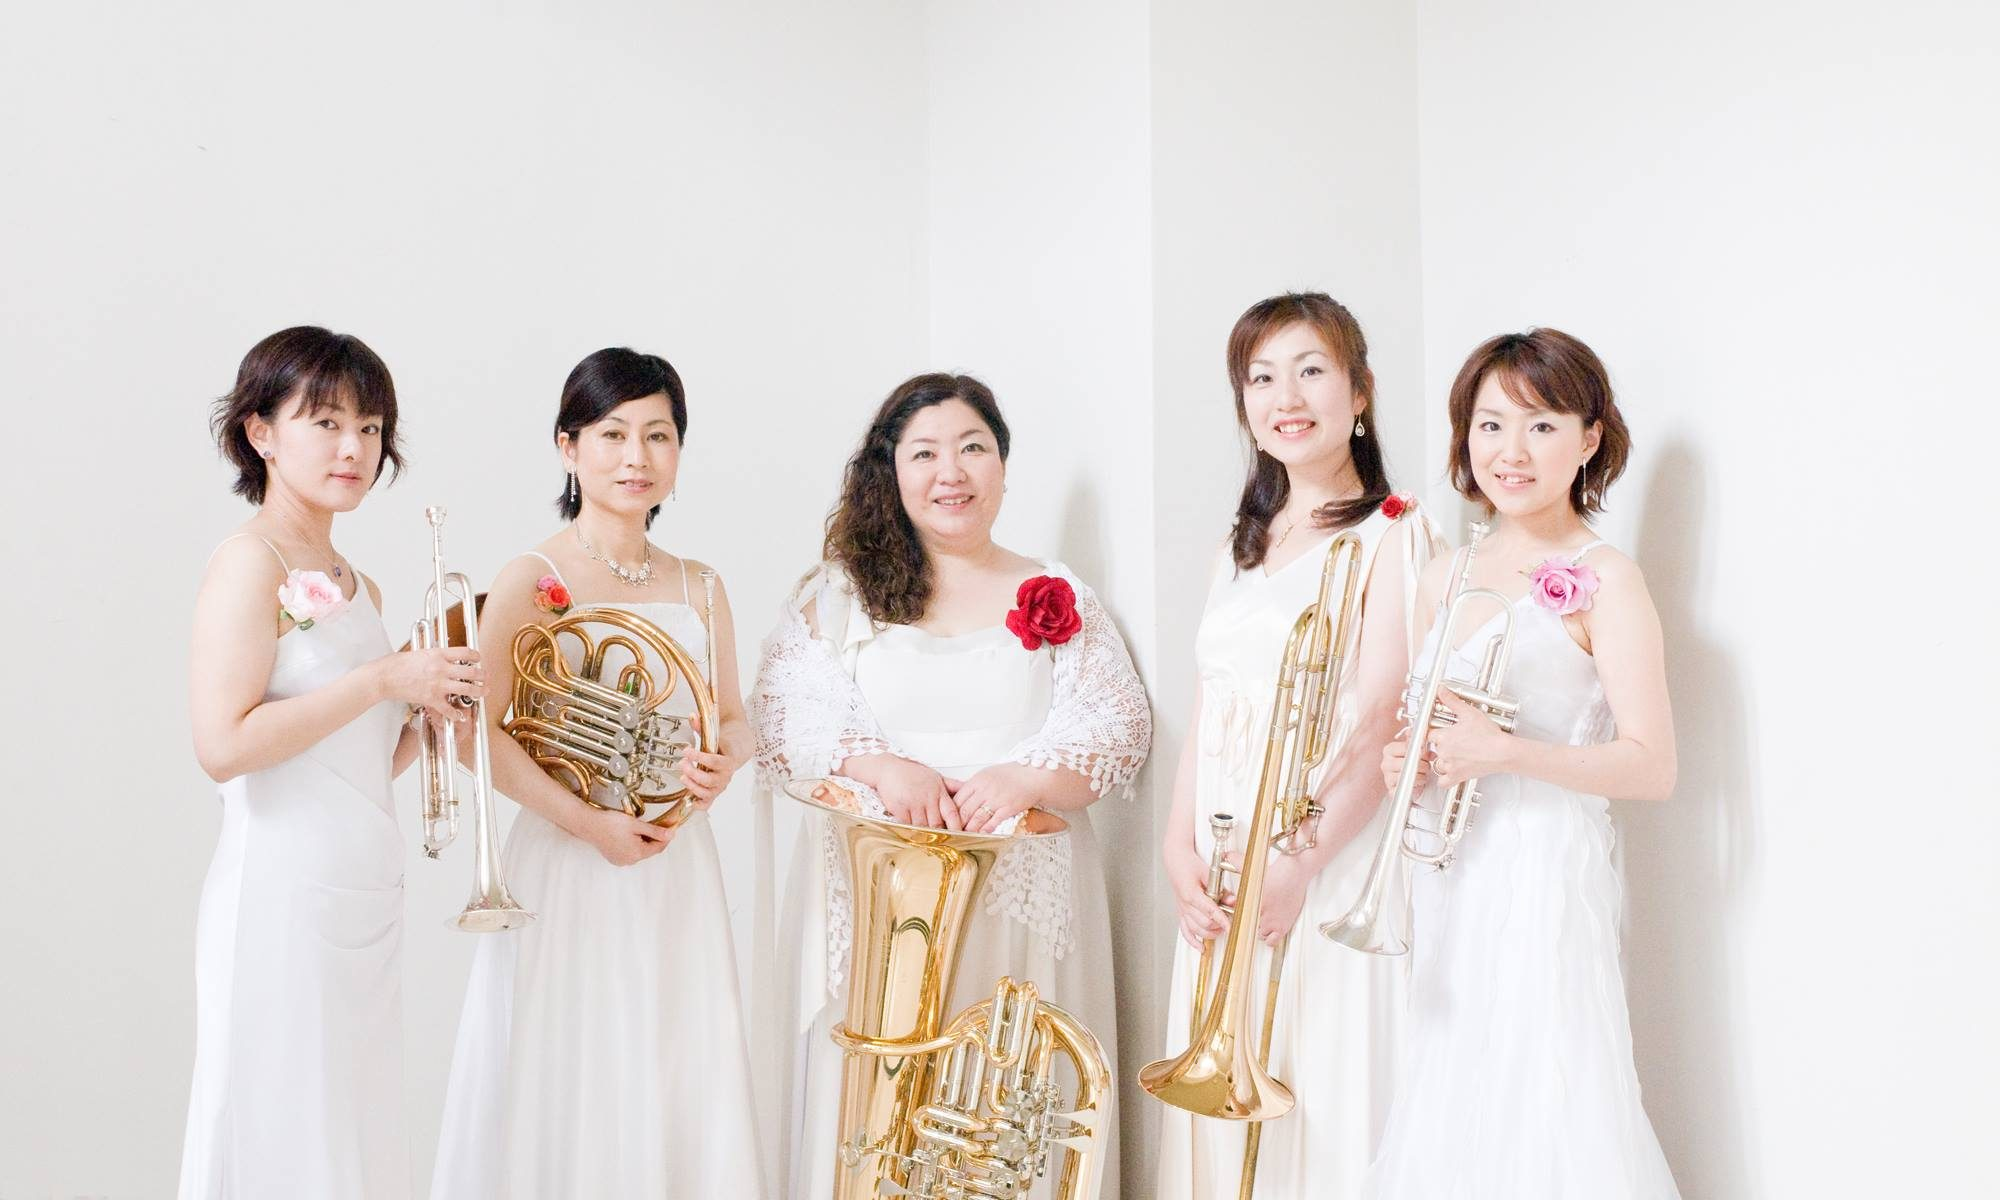 Brass Ensemble Rose Official Web Site